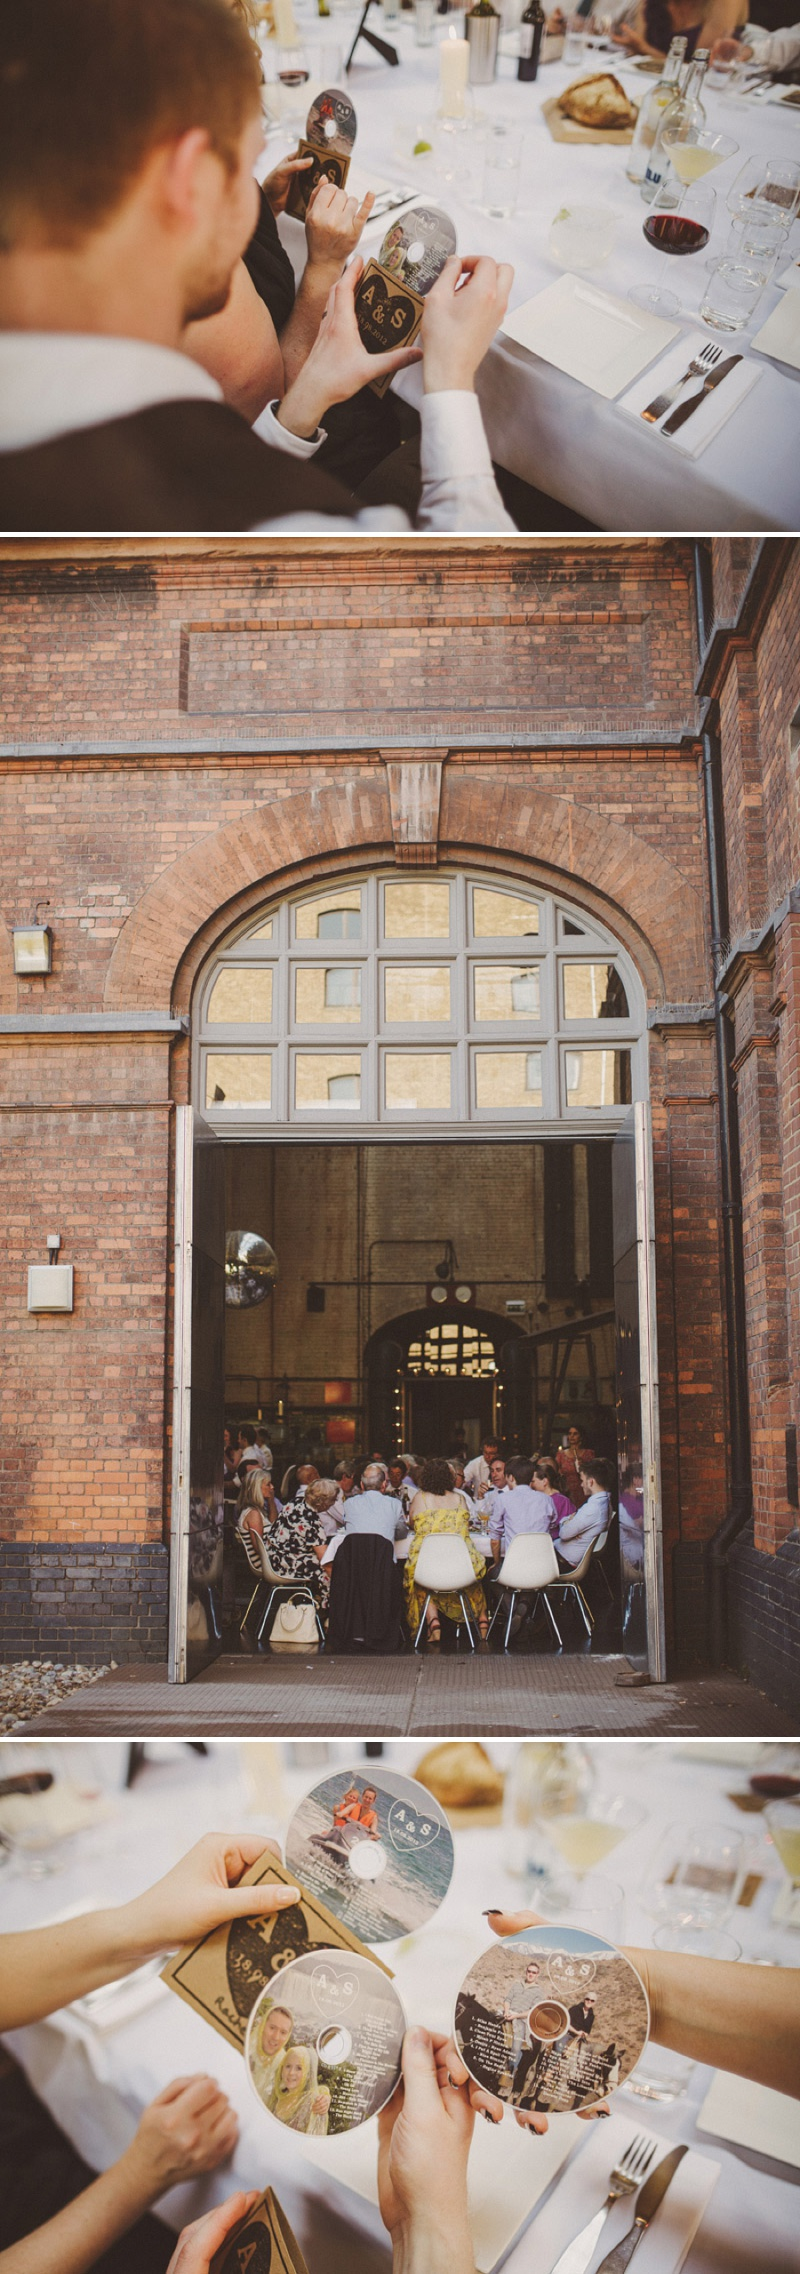 A hip city wedding held at an power station art gallery in East London with a Cymbeline 1930s inspired dress and a white rose bouquet with photography by Ed Peers._0013